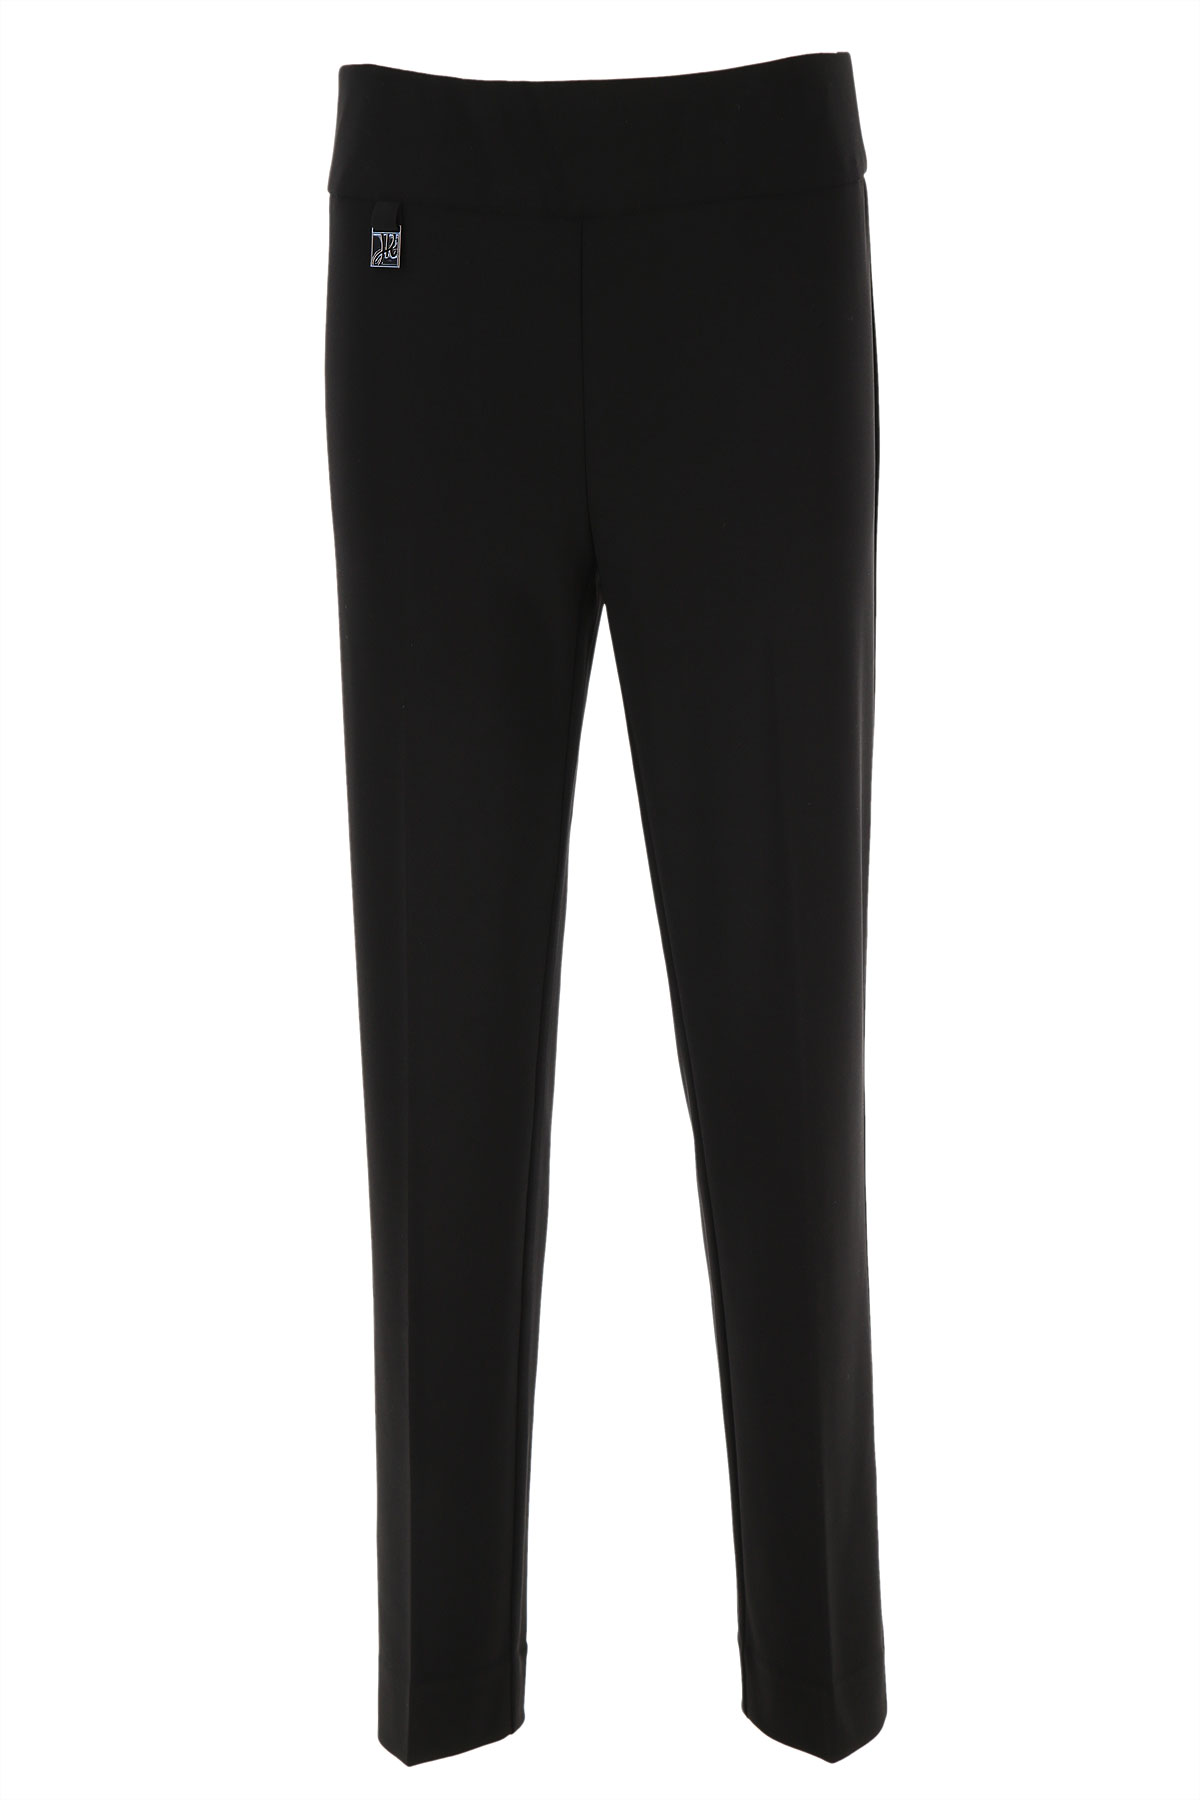 Joseph Ribkoff Pants for Women On Sale, Black, polyestere, 2019, 30 32